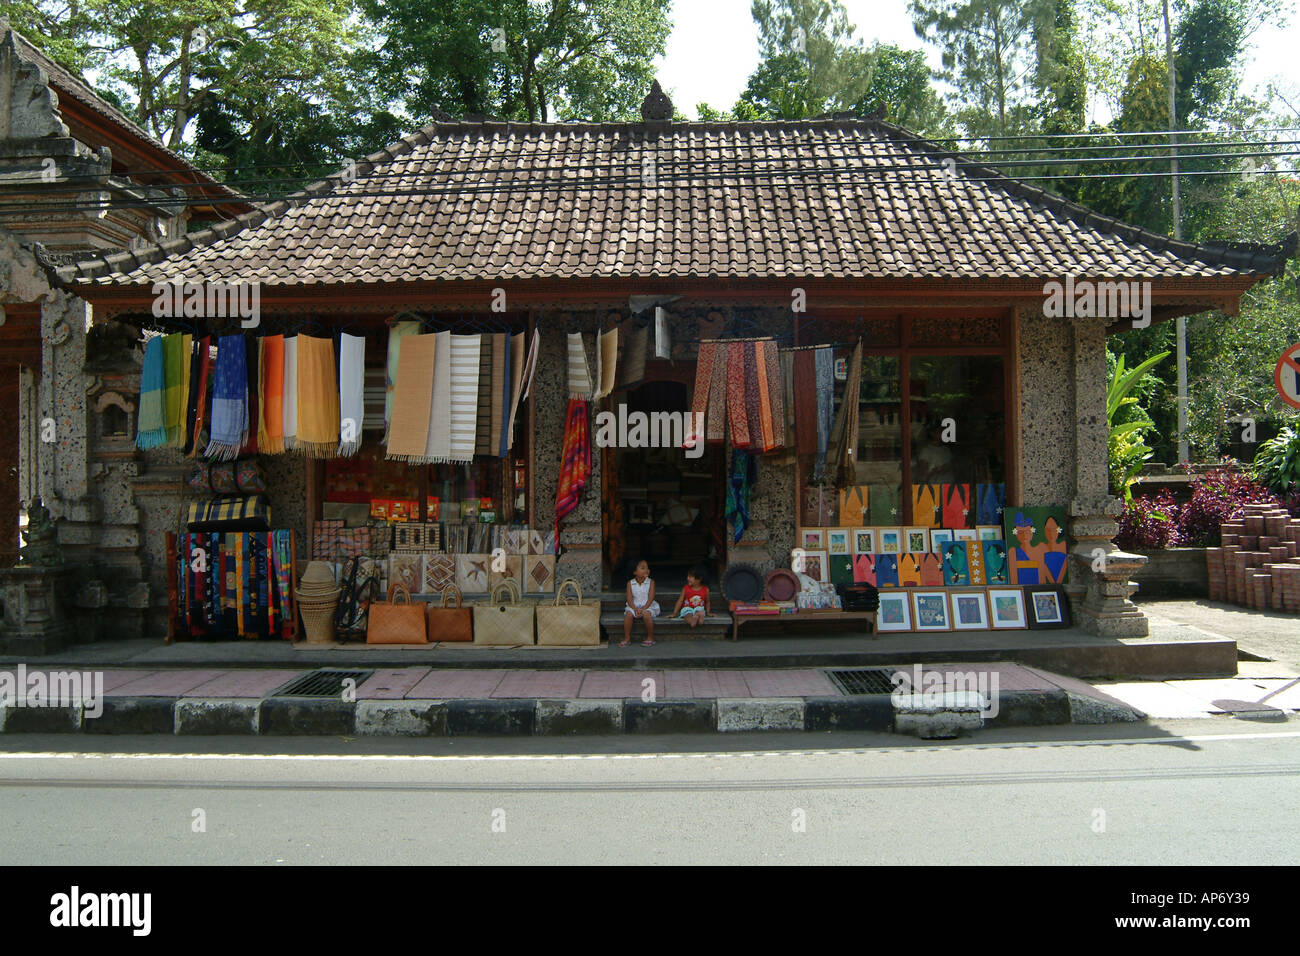 Street Shop Selling Textiles And Handicrafts In Ubud Bali Indonesia